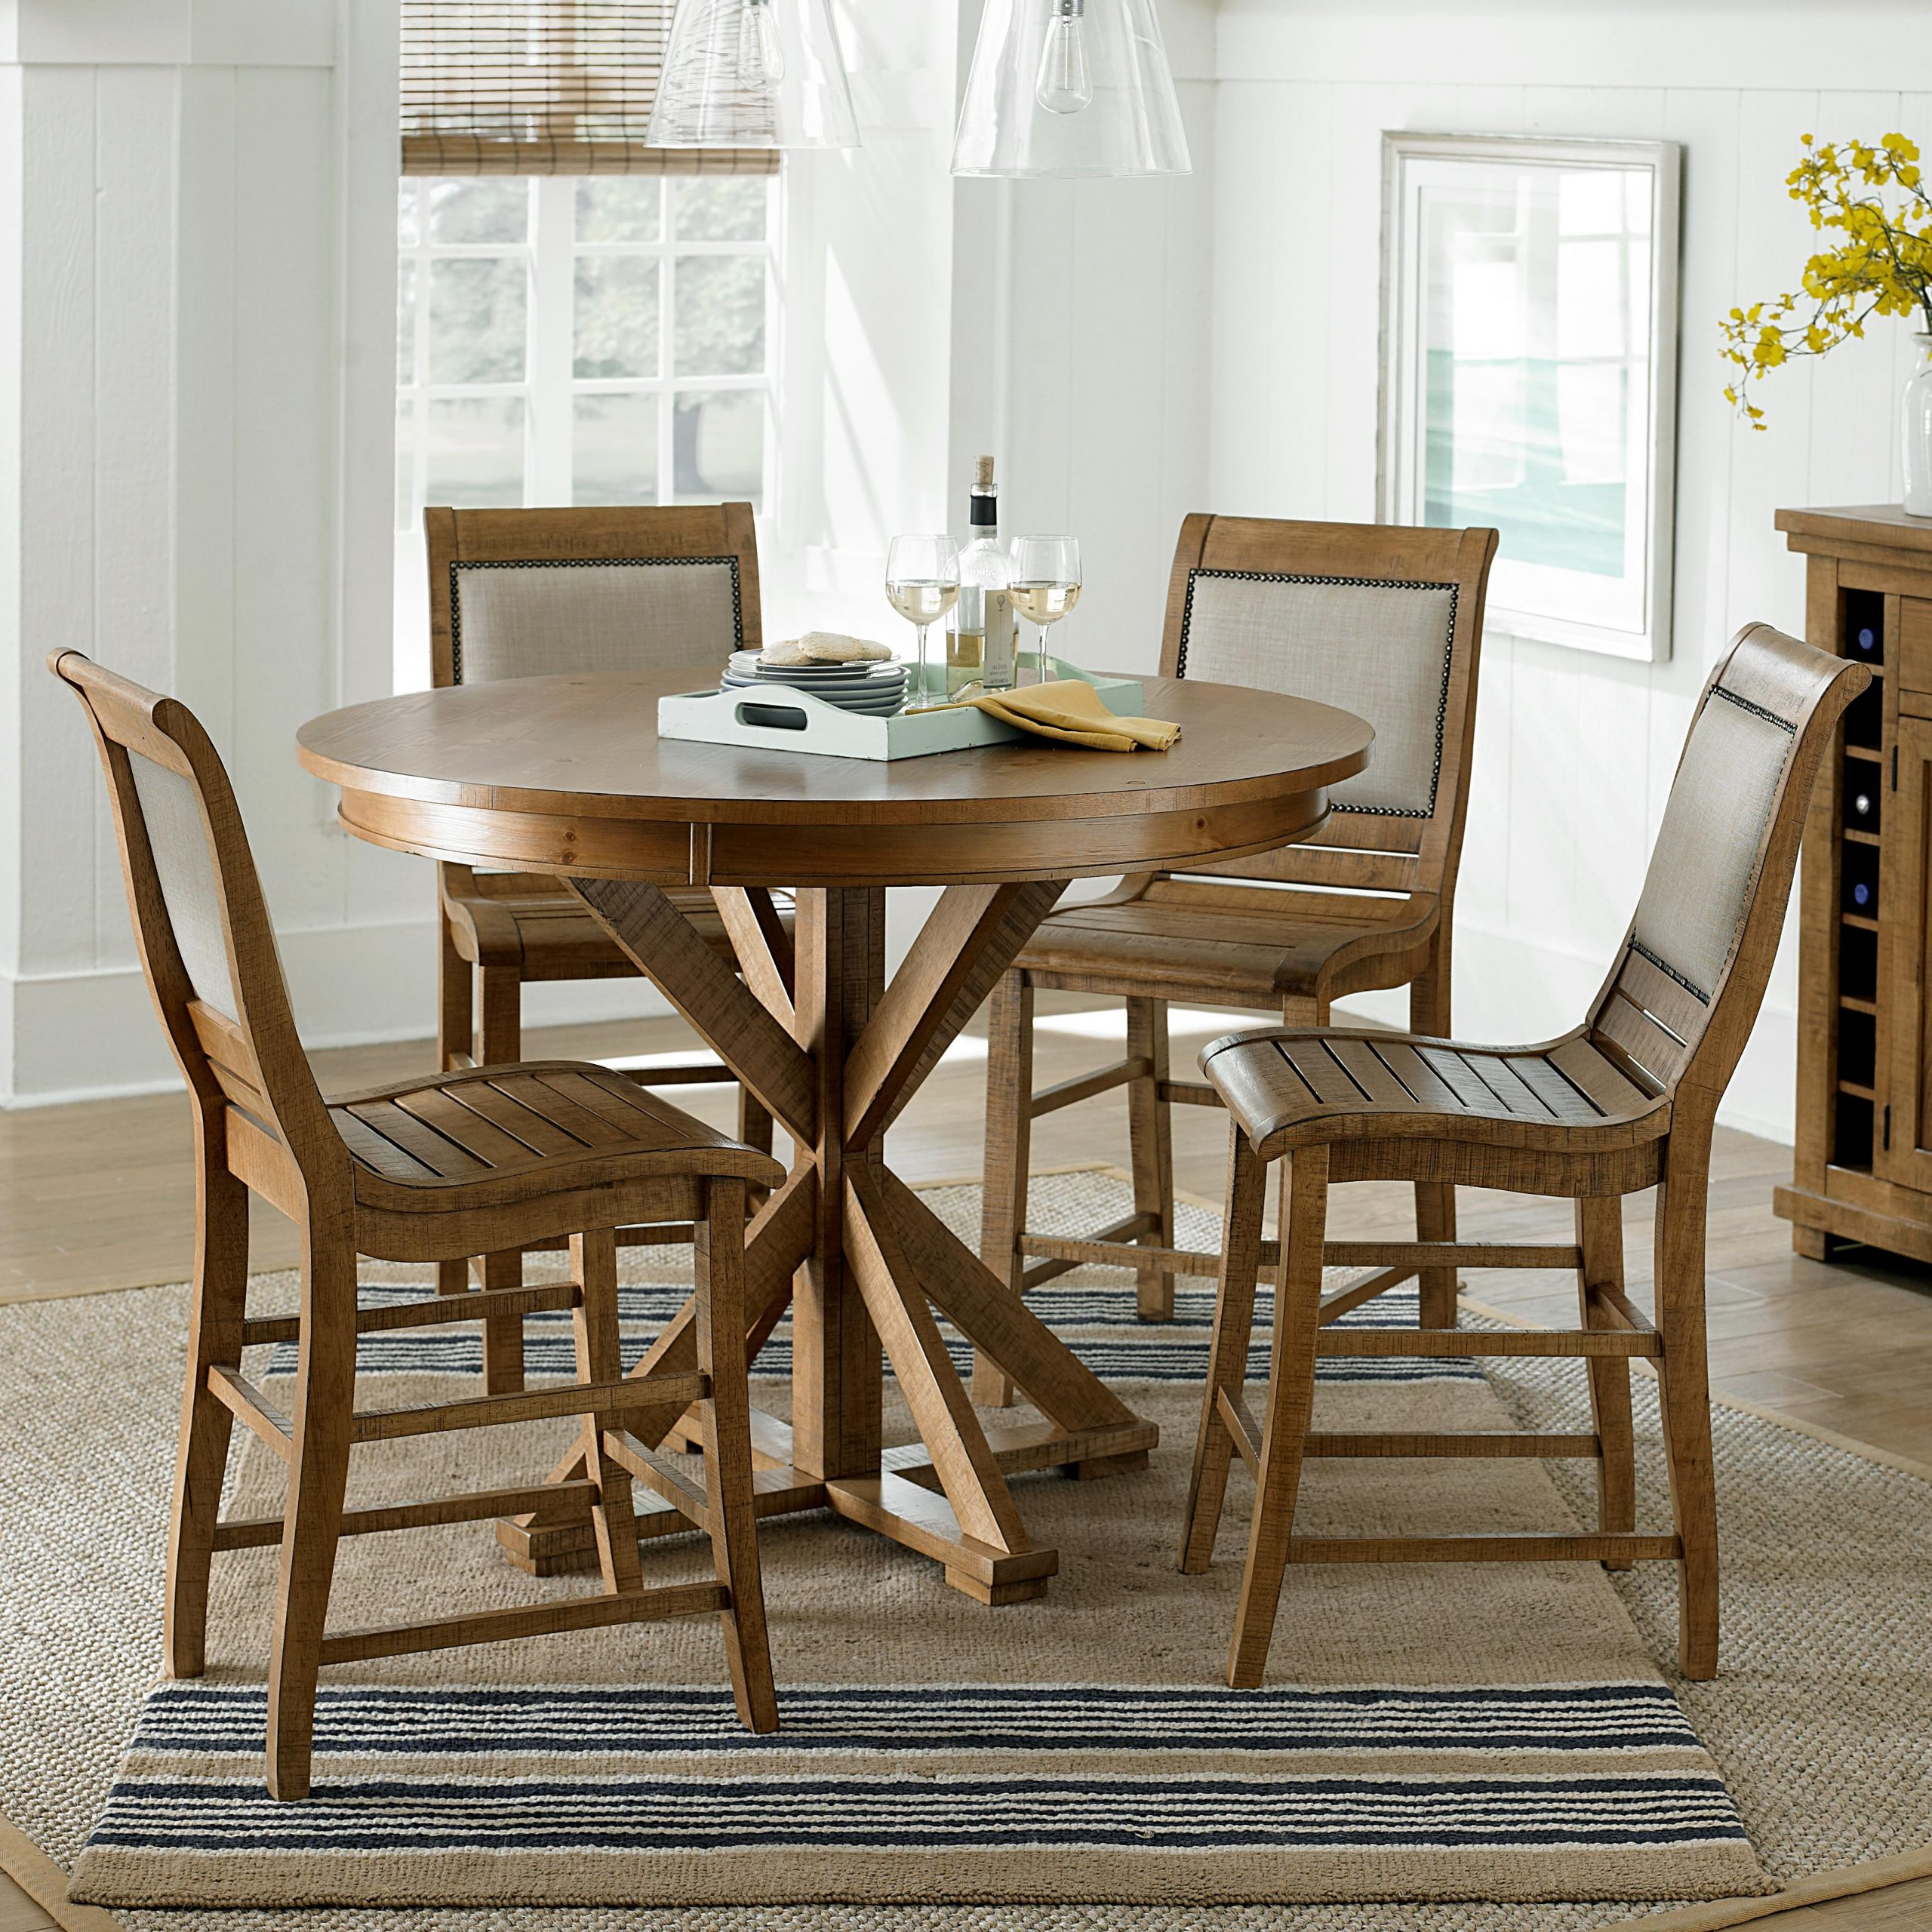 Progressive Furniture Willow Dining 5 Piece Round Counter Throughout 2017 Pennside Counter Height Dining Tables (View 12 of 15)